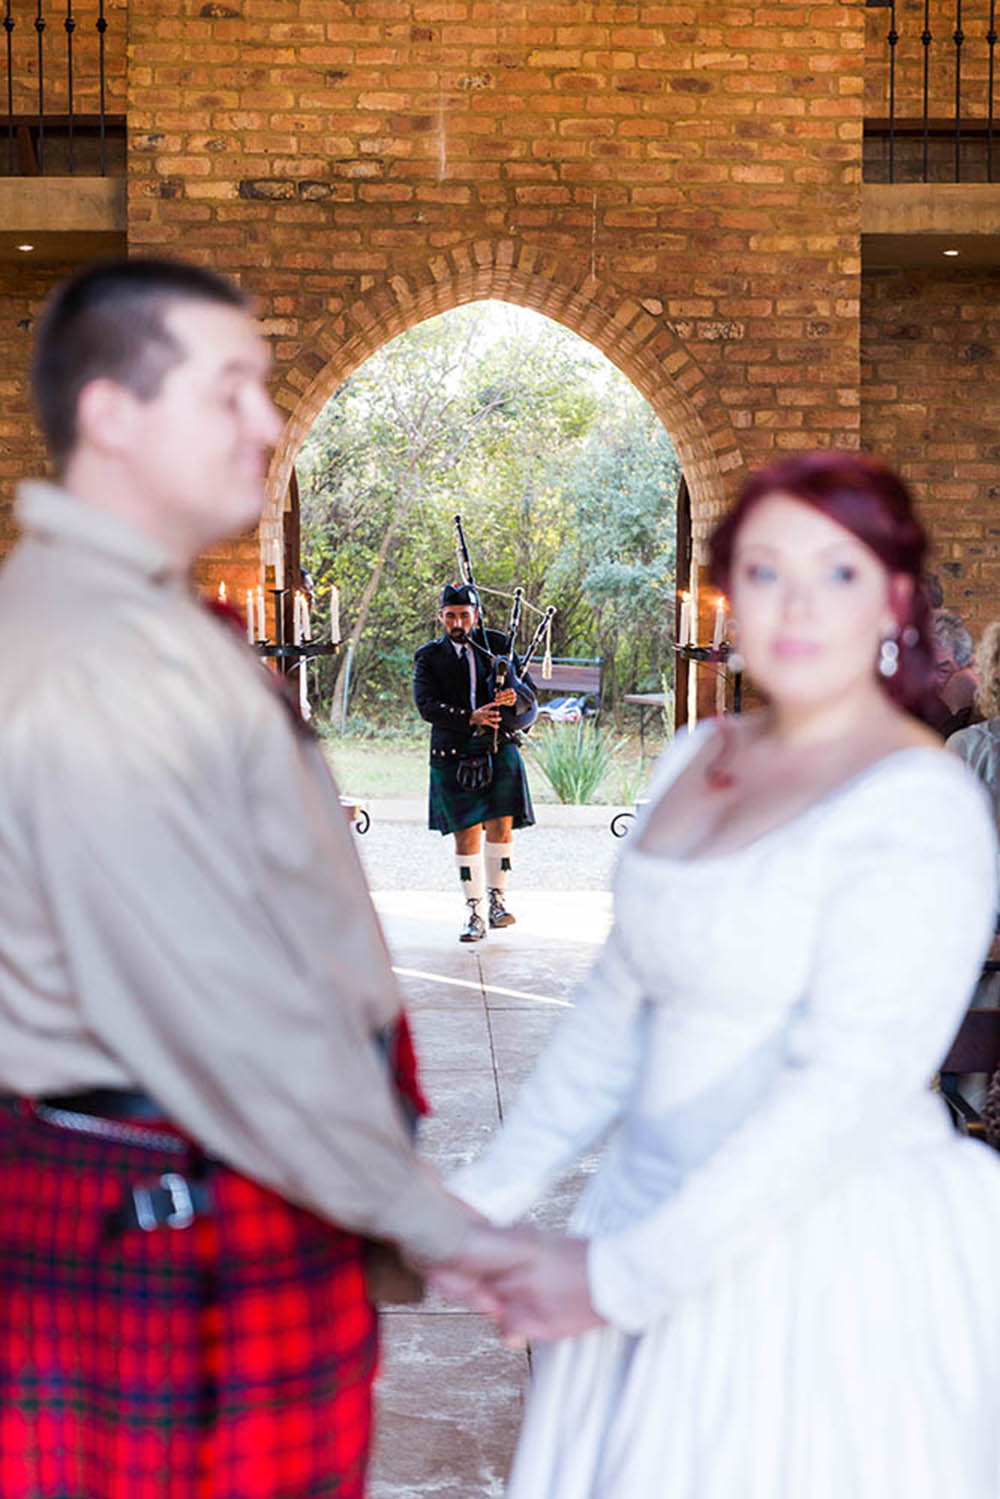 medieval-themed-wedding-medieval-wedding-dgr-photography-castle-wedding-60